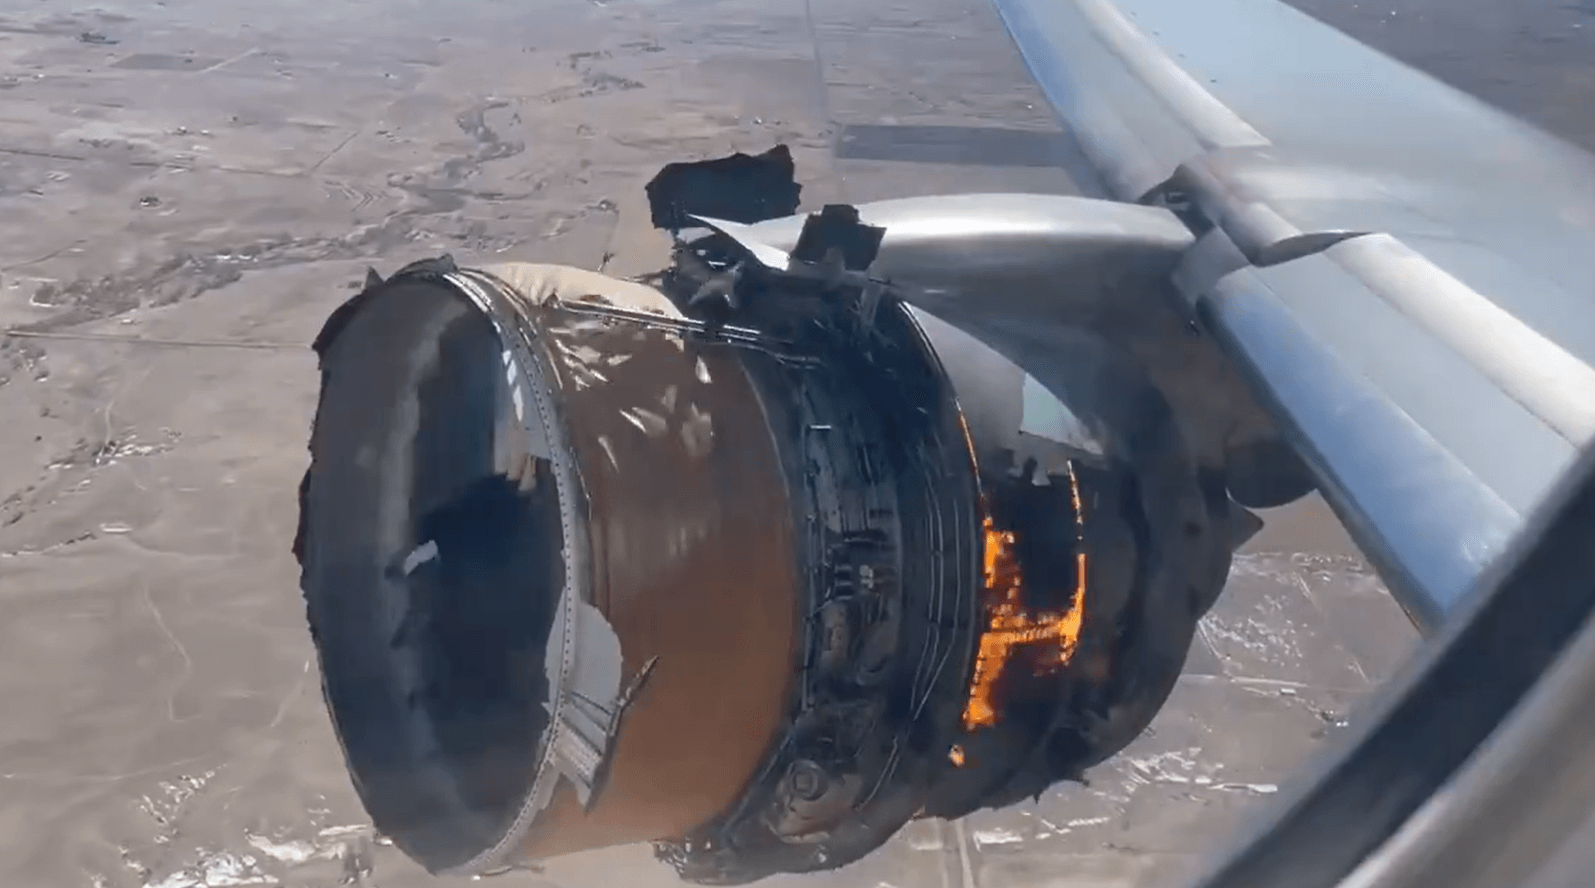 Airlines ground Boeing 777s after engine failure